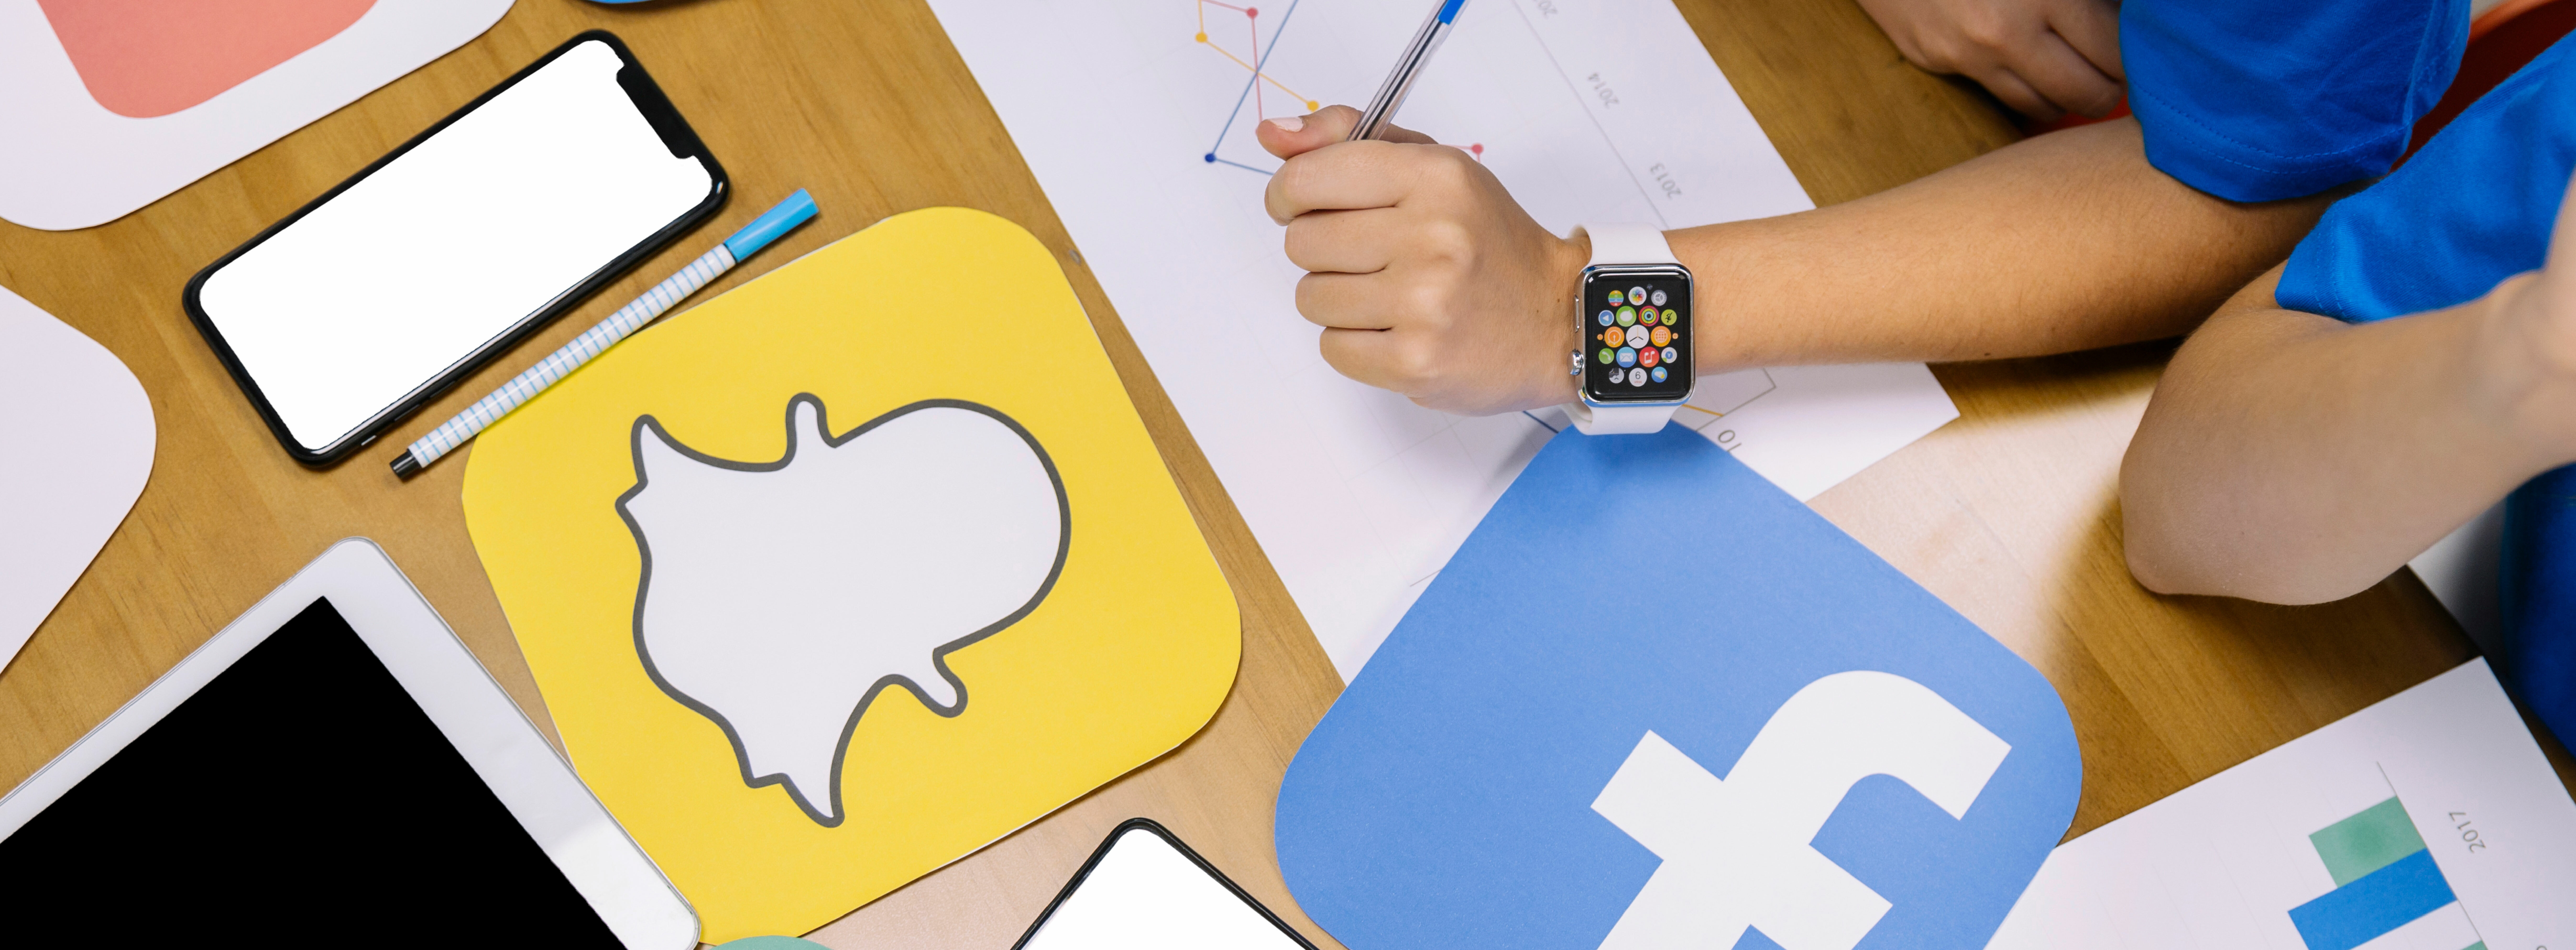 A Website is Not Enough: How to Get Active and Stay Relevant on Social Media in 2021